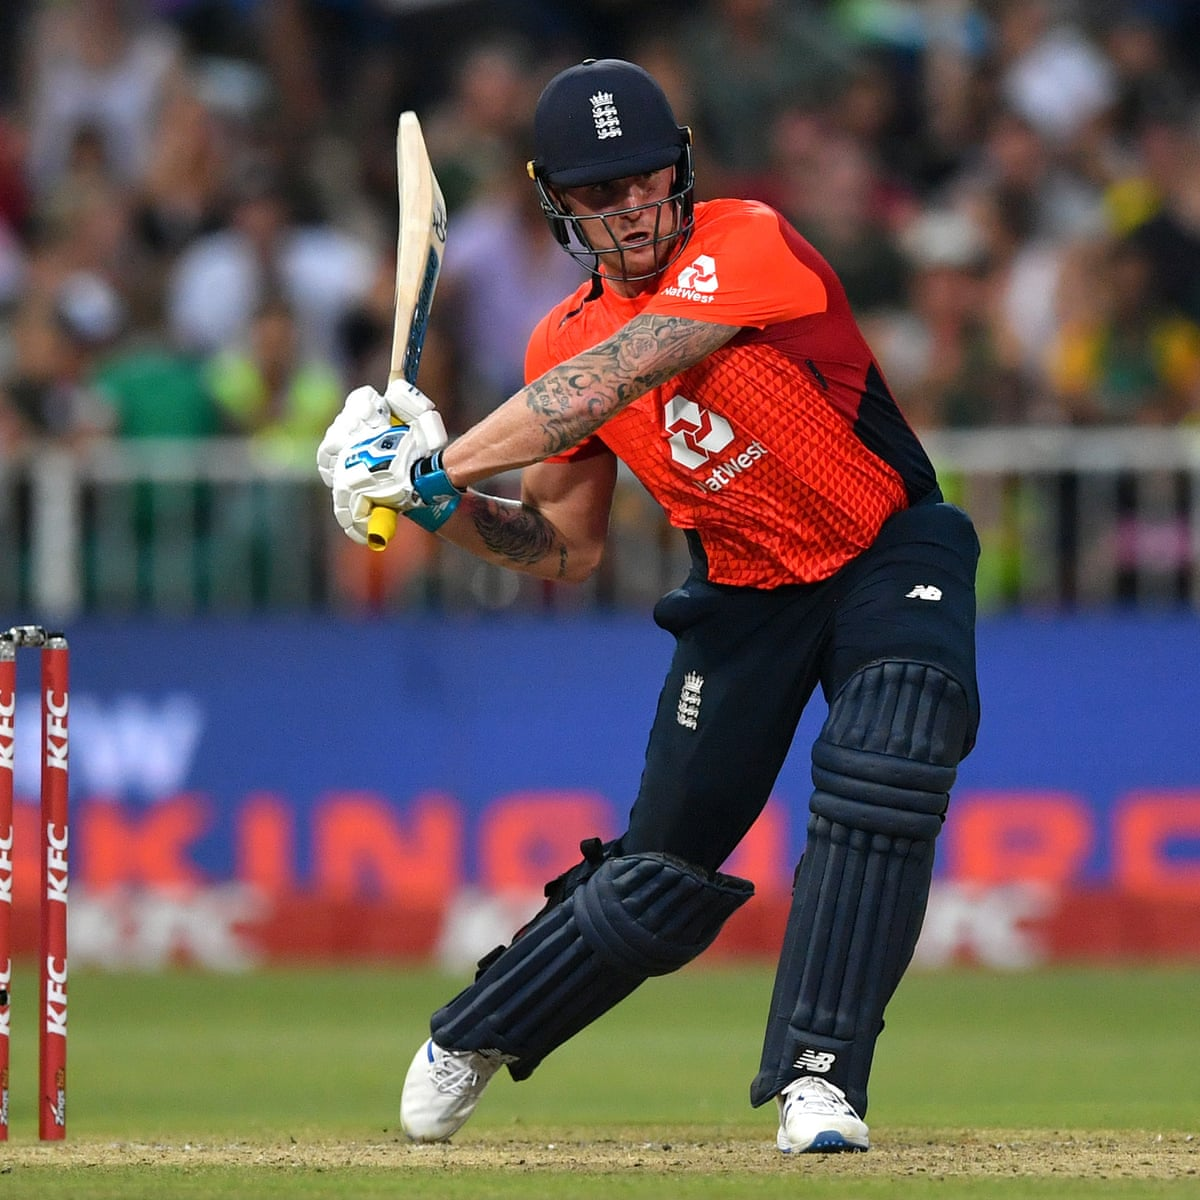 England's T20 top-order batting strength is 'frightening', says Jason Roy | England cricket team | The Guardian